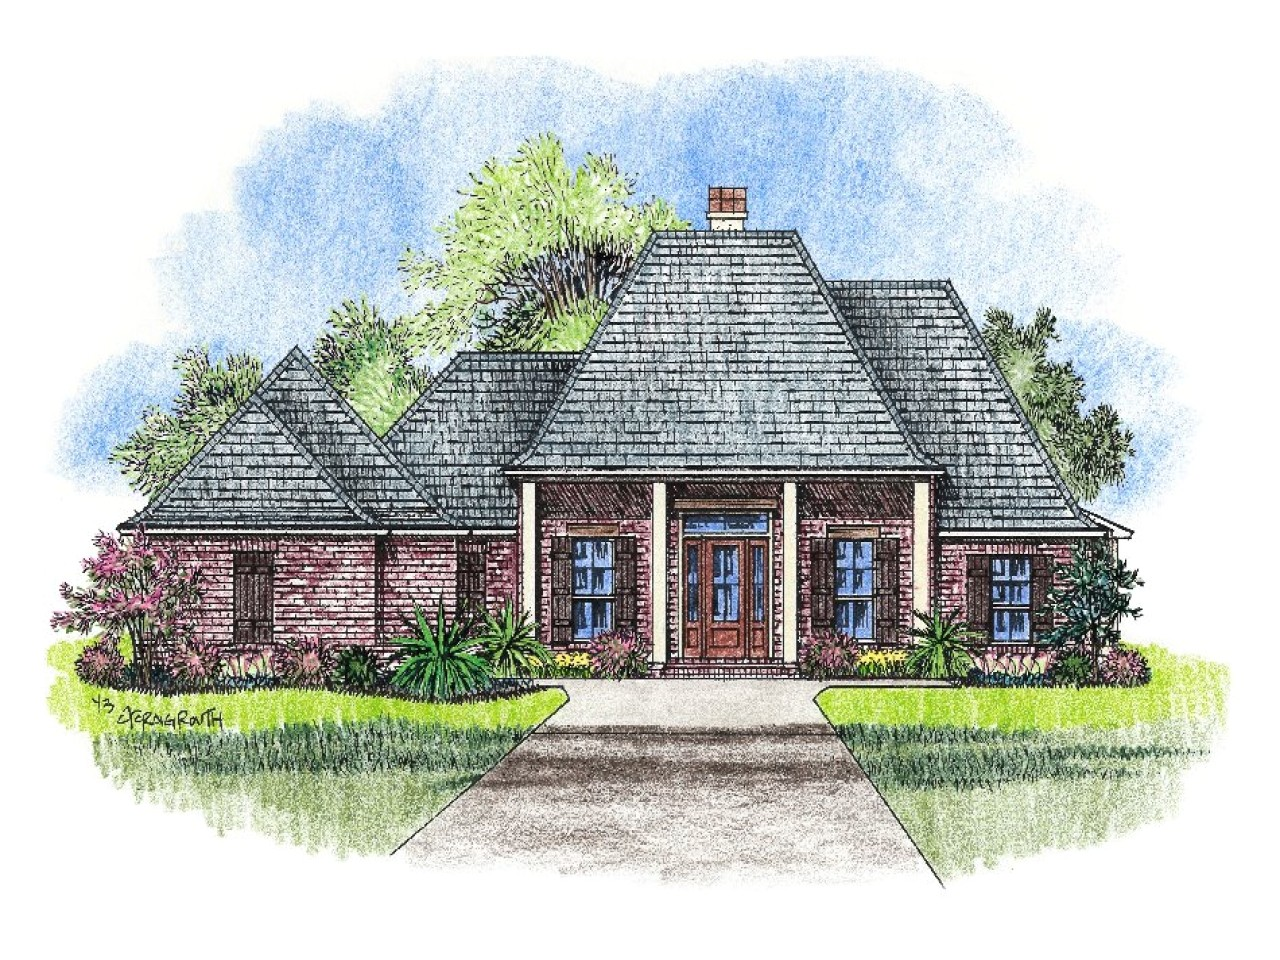 77ca612dad2c0187 french country louisiana house plans french country house plans